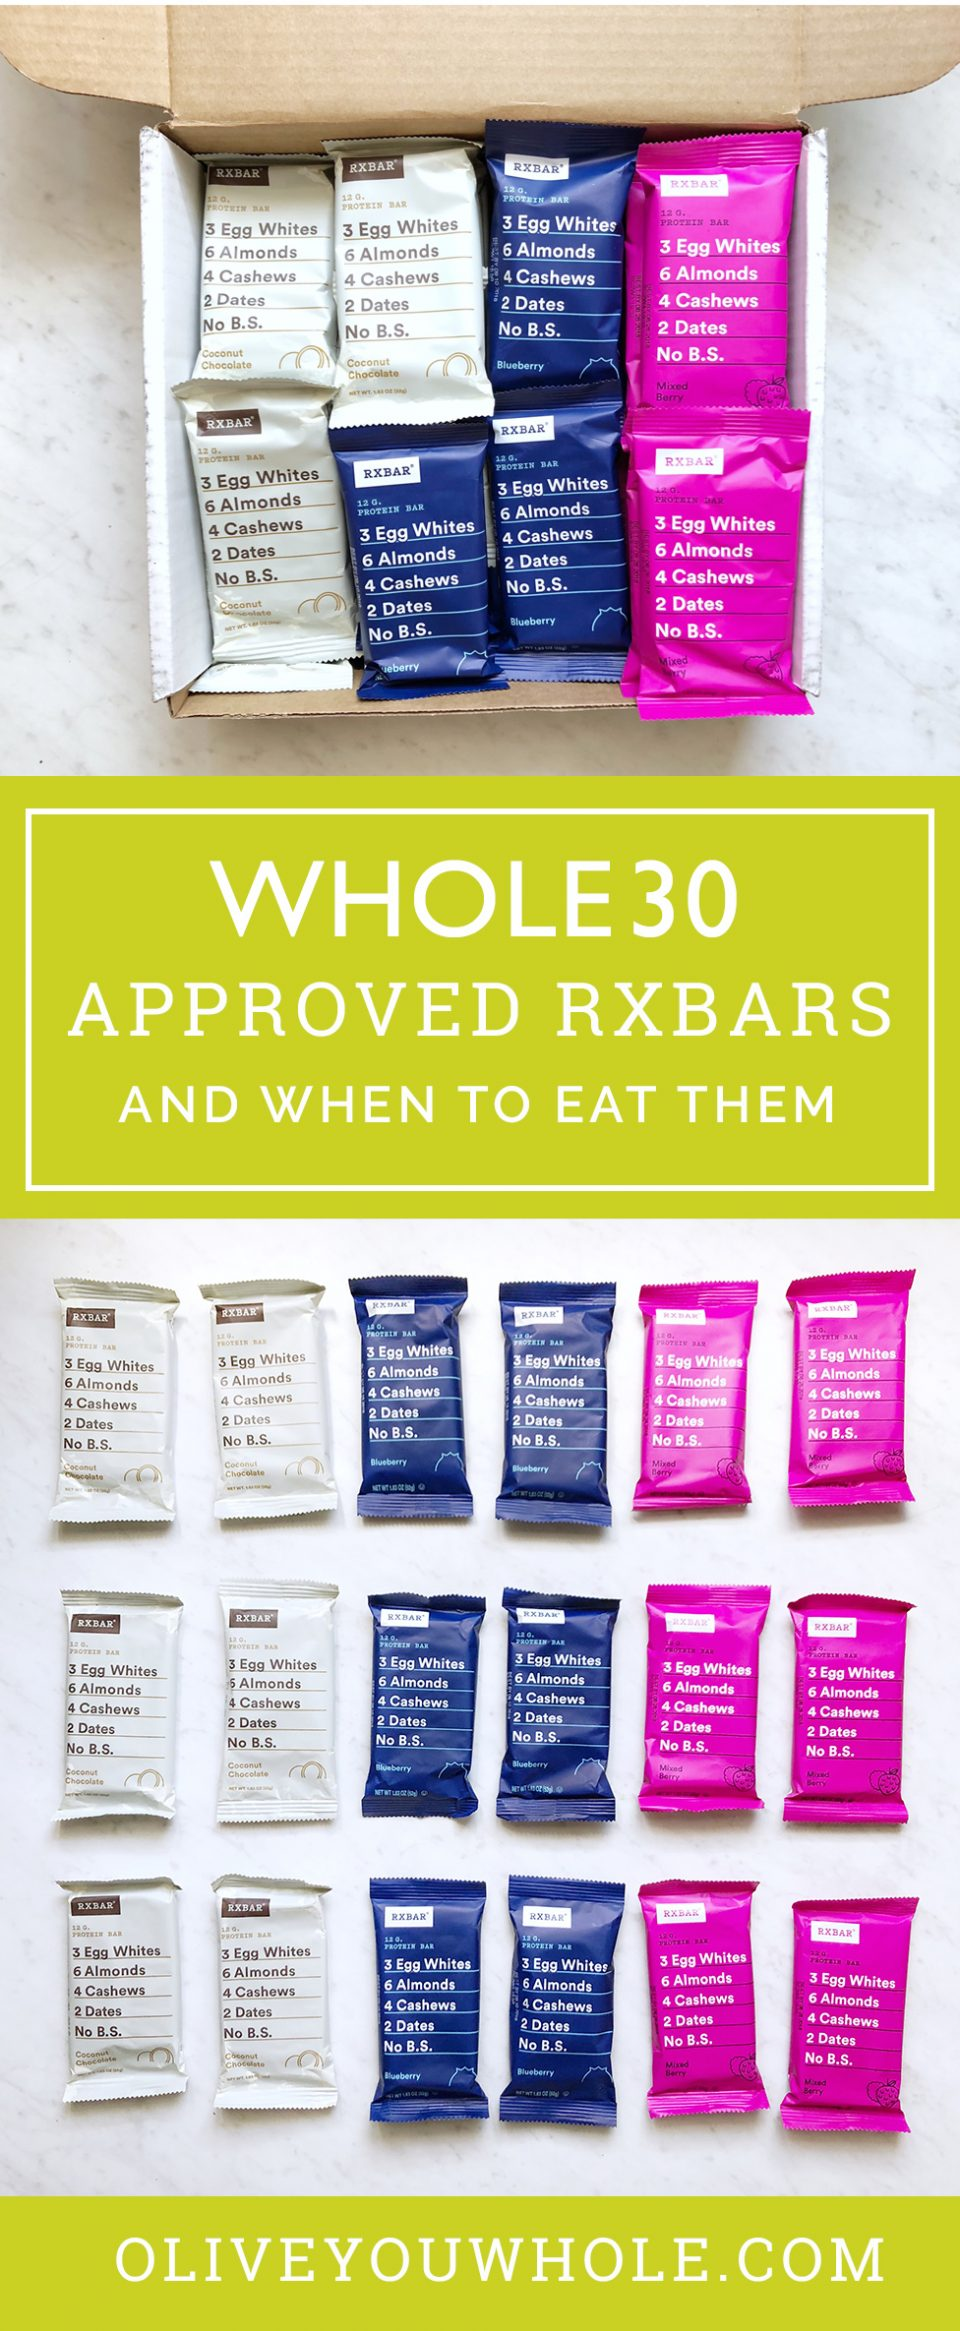 Whole30 RxBars: Which are approved? When can you eat them